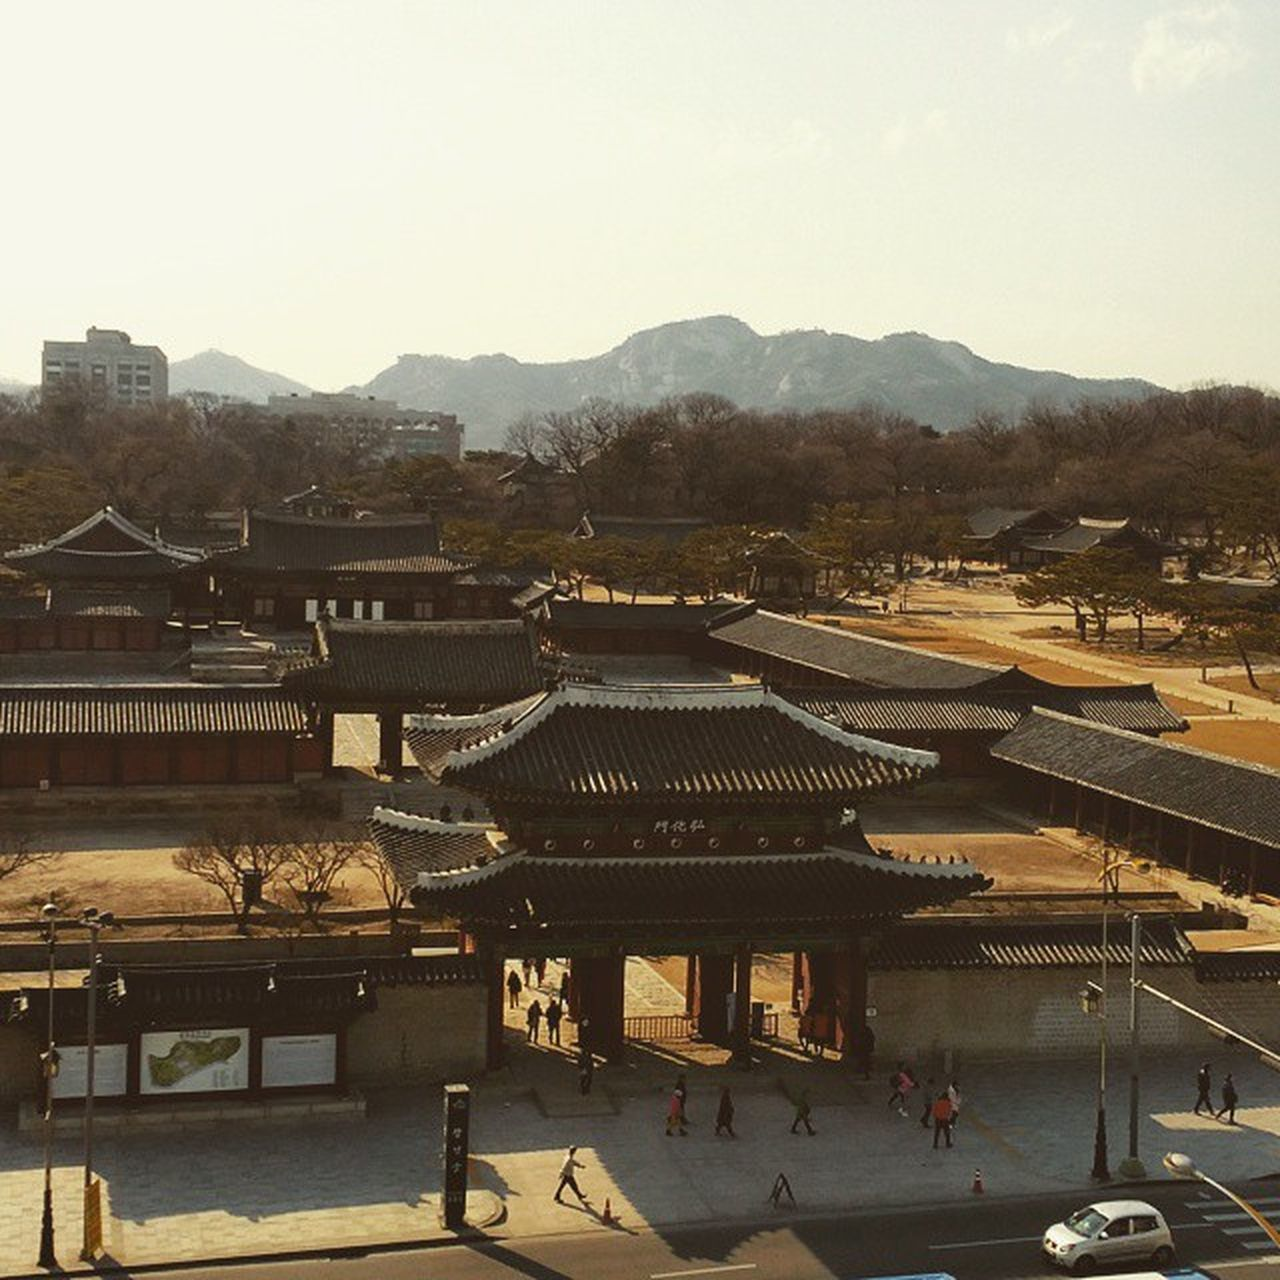 Fromroof Seoul Korea View Spring Duringduty Duty Rest Changgyeonggung Palace Traditional Past Josundynasty Dynasty 창경궁 서울 근무 휴식 봄